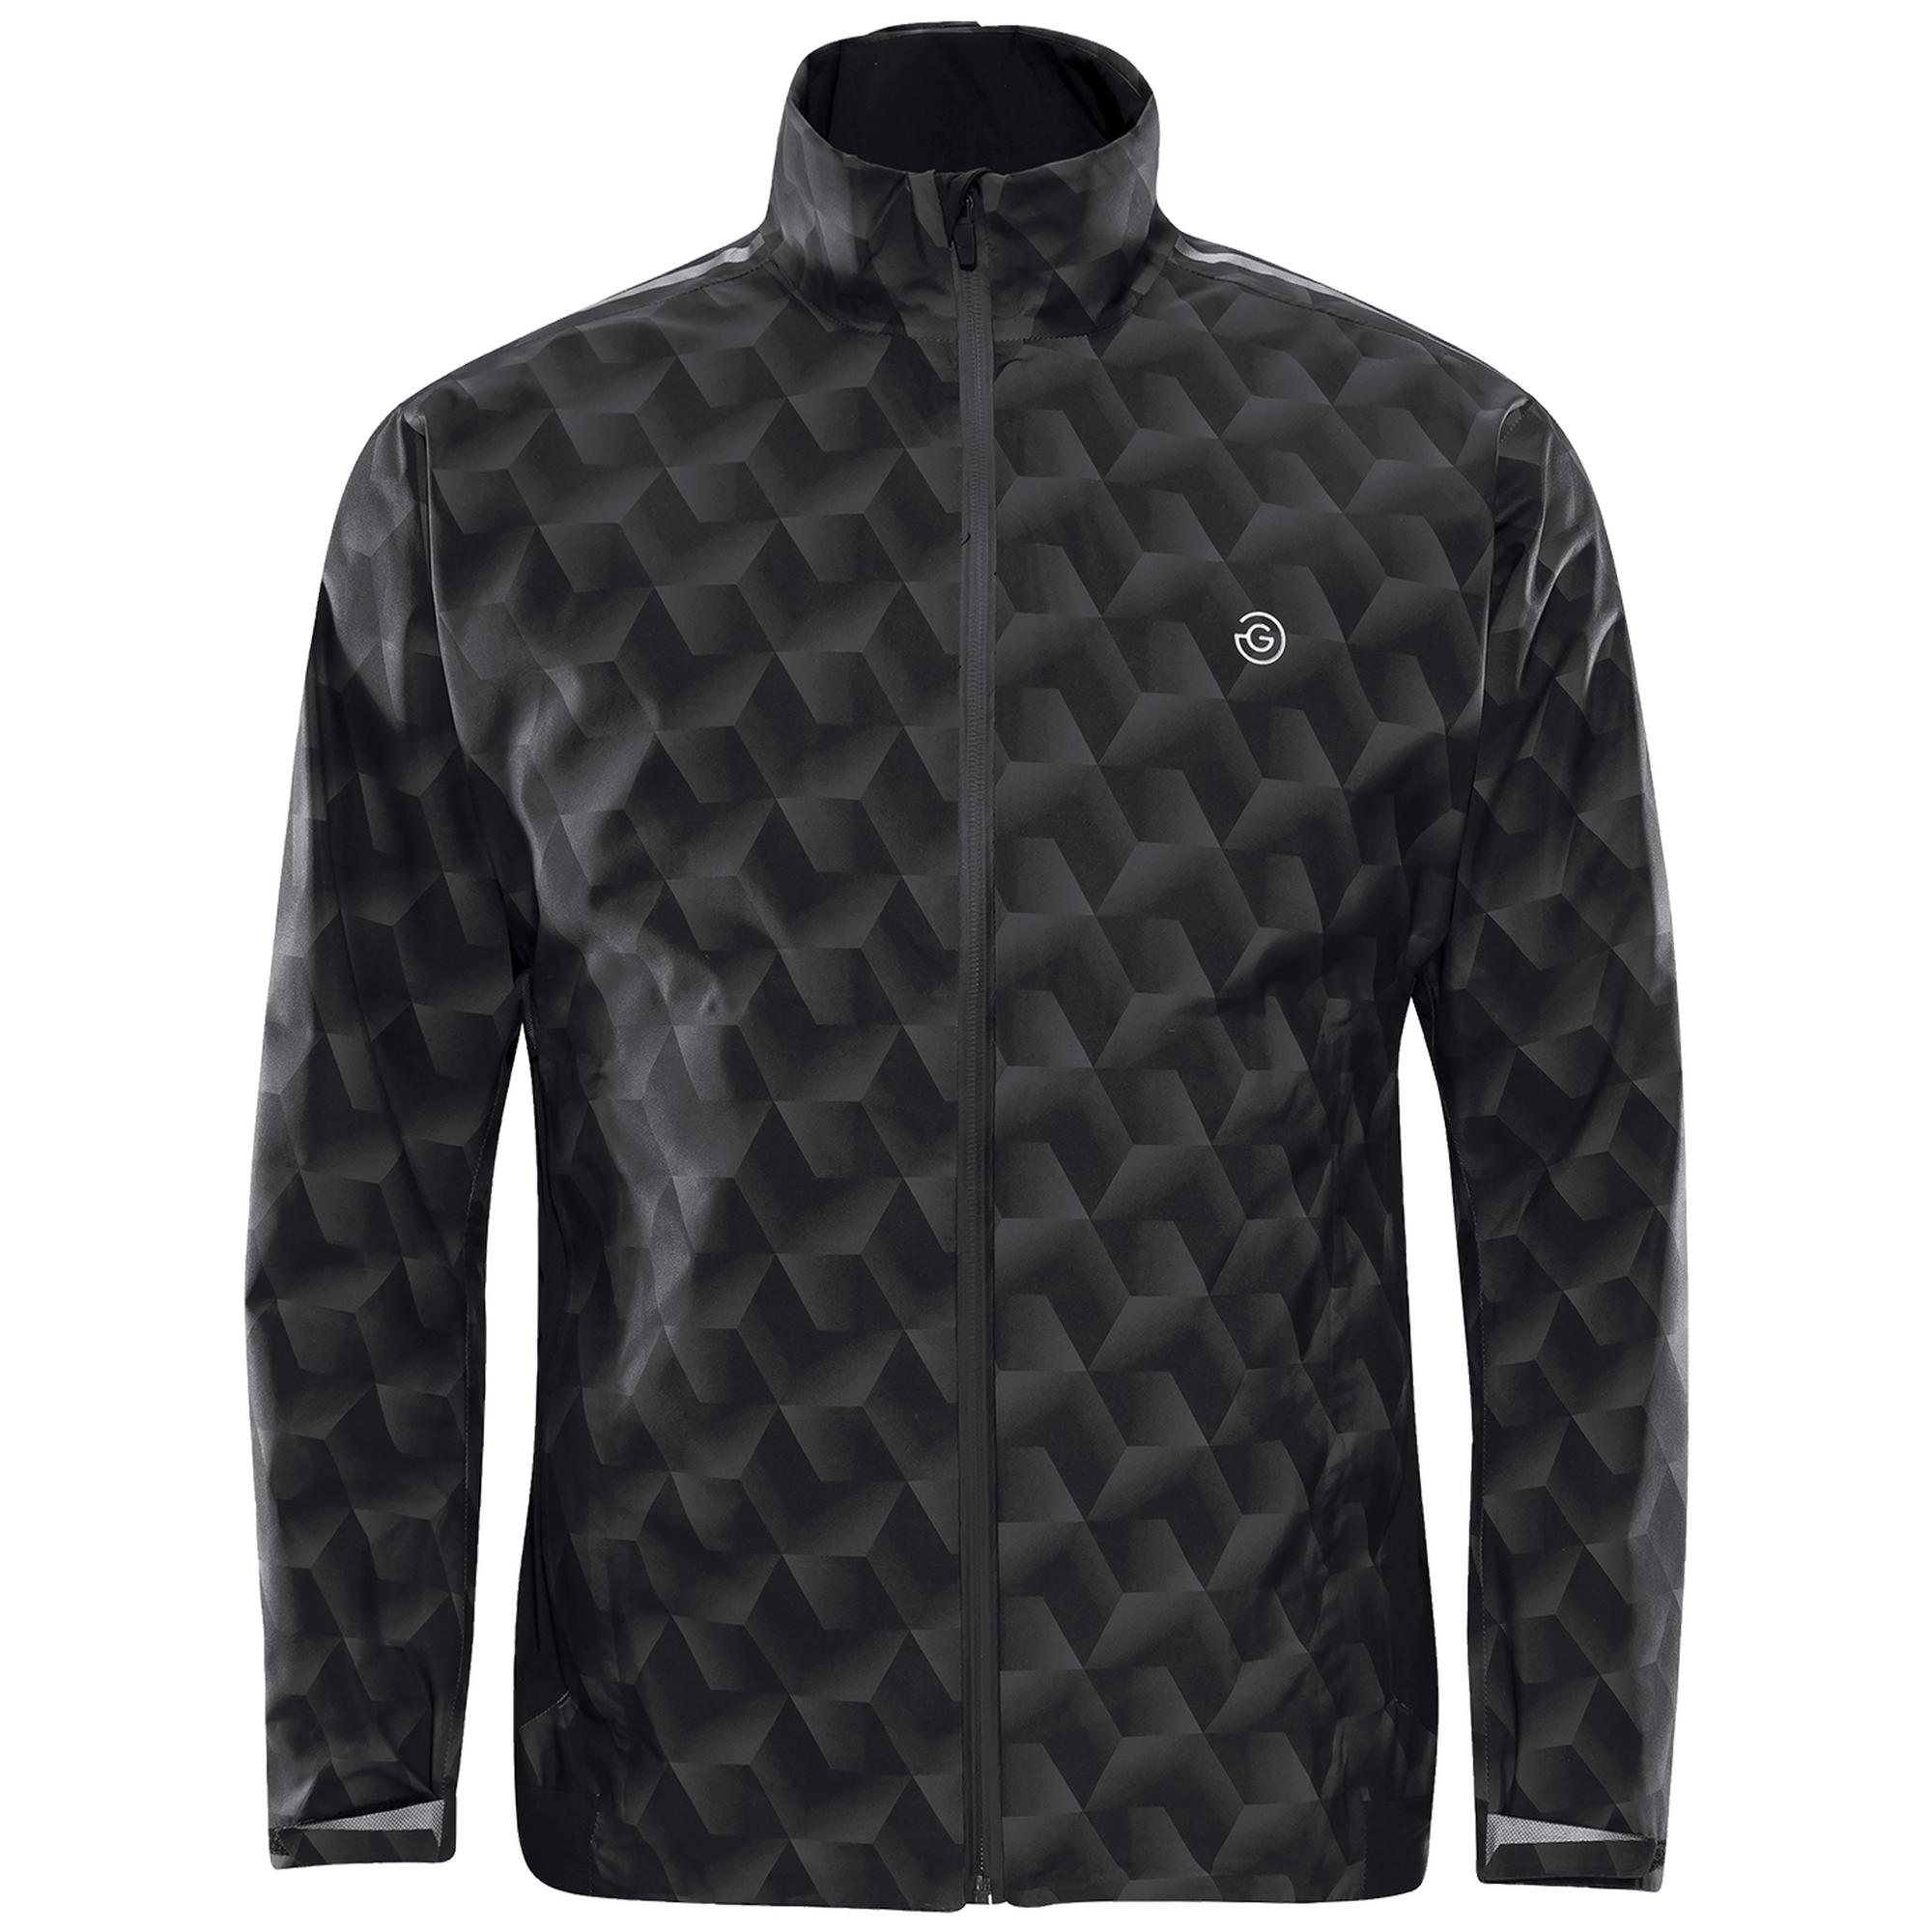 Men's E-llusion Rain Jacket